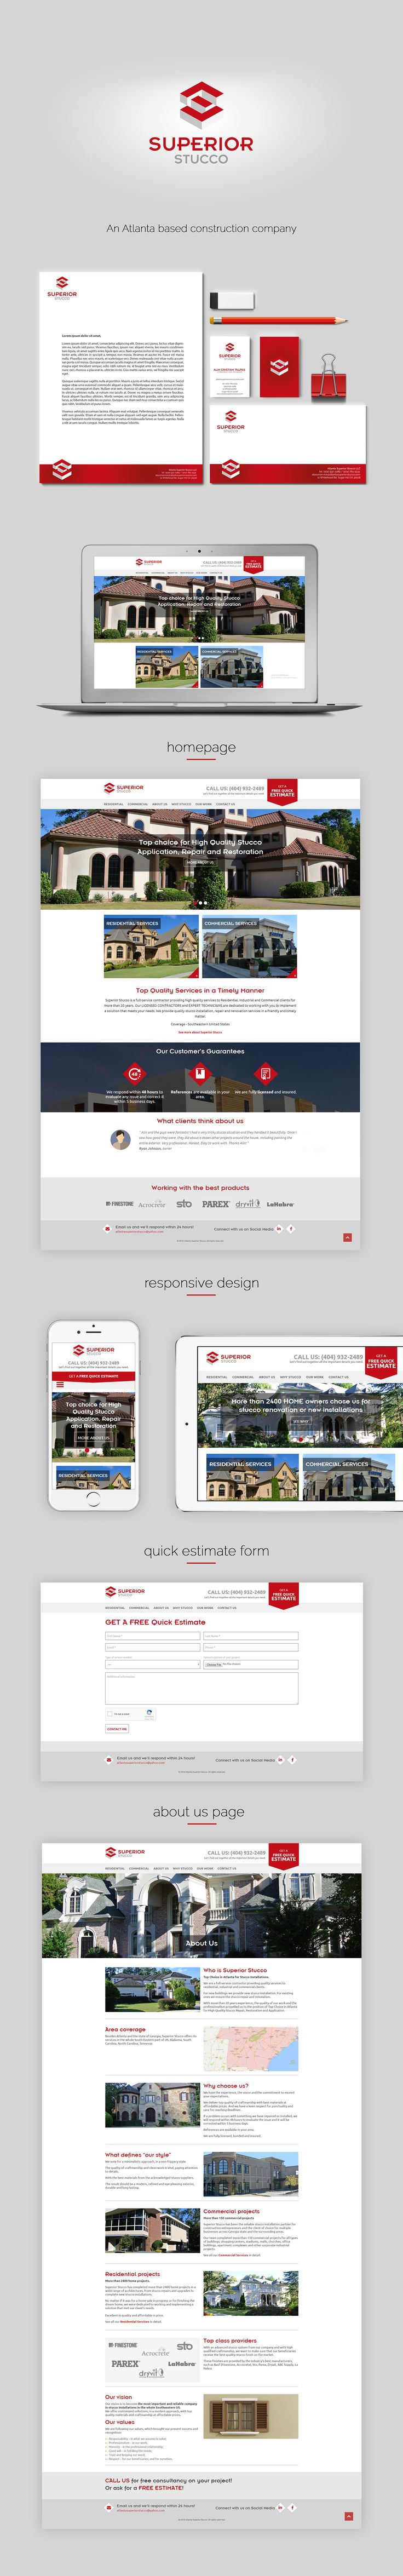 Superior Stucco branding and webdesign